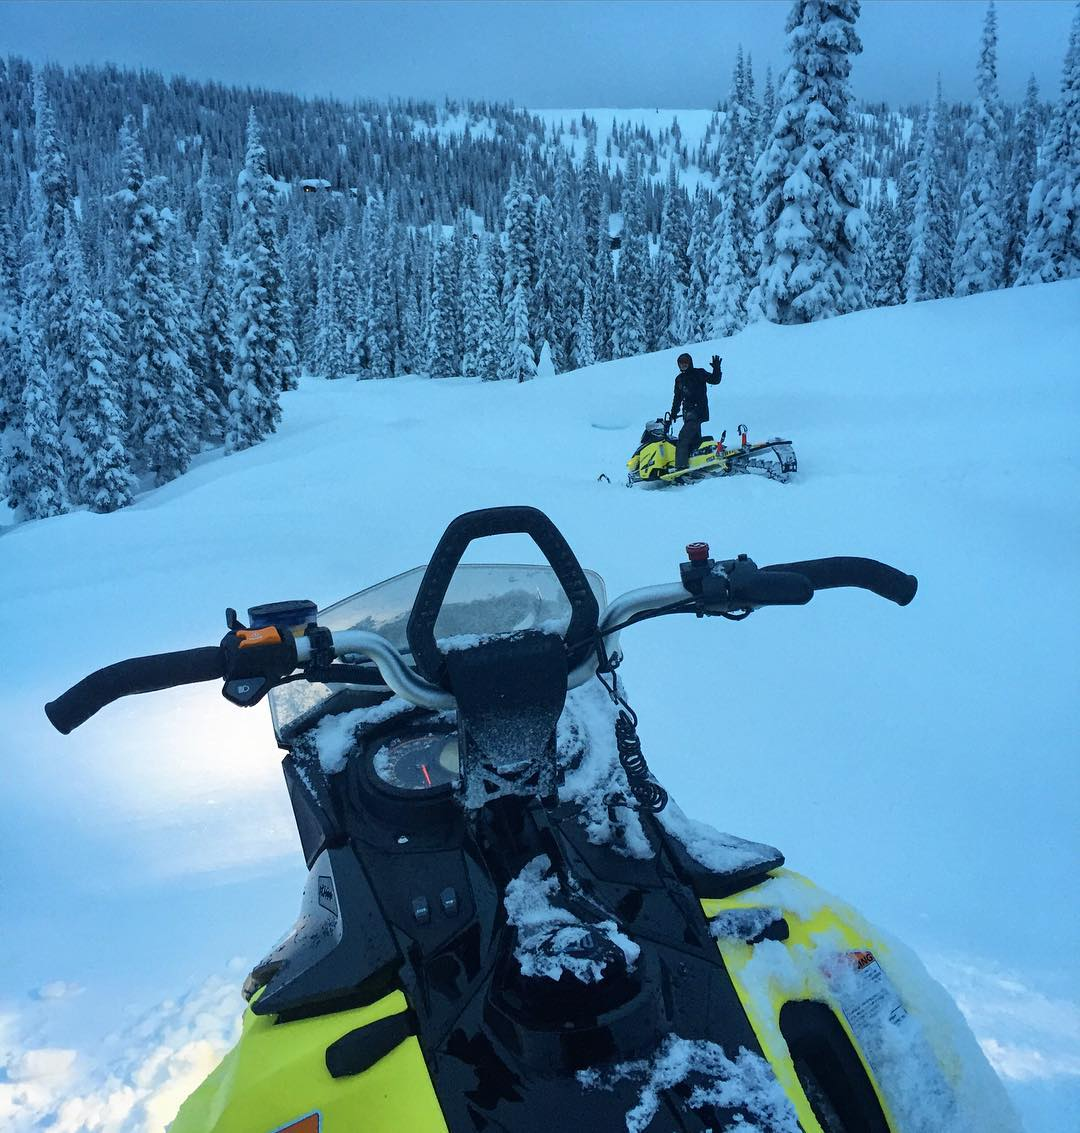 This view - I like this view. Roop'in around @BaldfaceLodge with my super-agent @WMGAstephen this evening. #muchfun #suchpowder #suchpower #SkiDoo #SummitX #snowbraaaps